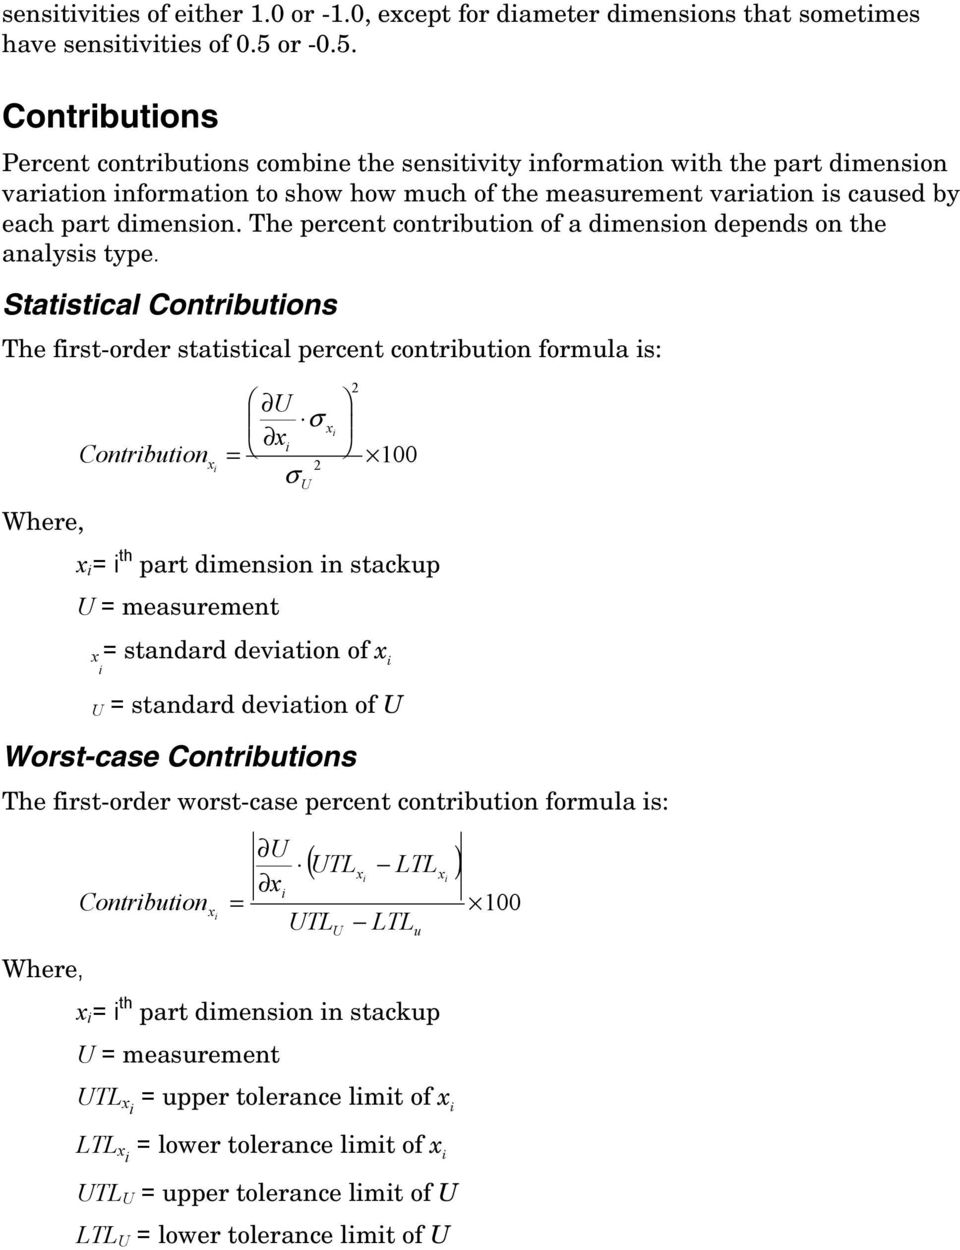 Contributions Percent contributions combine the sensitivity information with the part dimension variation information to show how much of the measurement variation is caused by each part dimension.